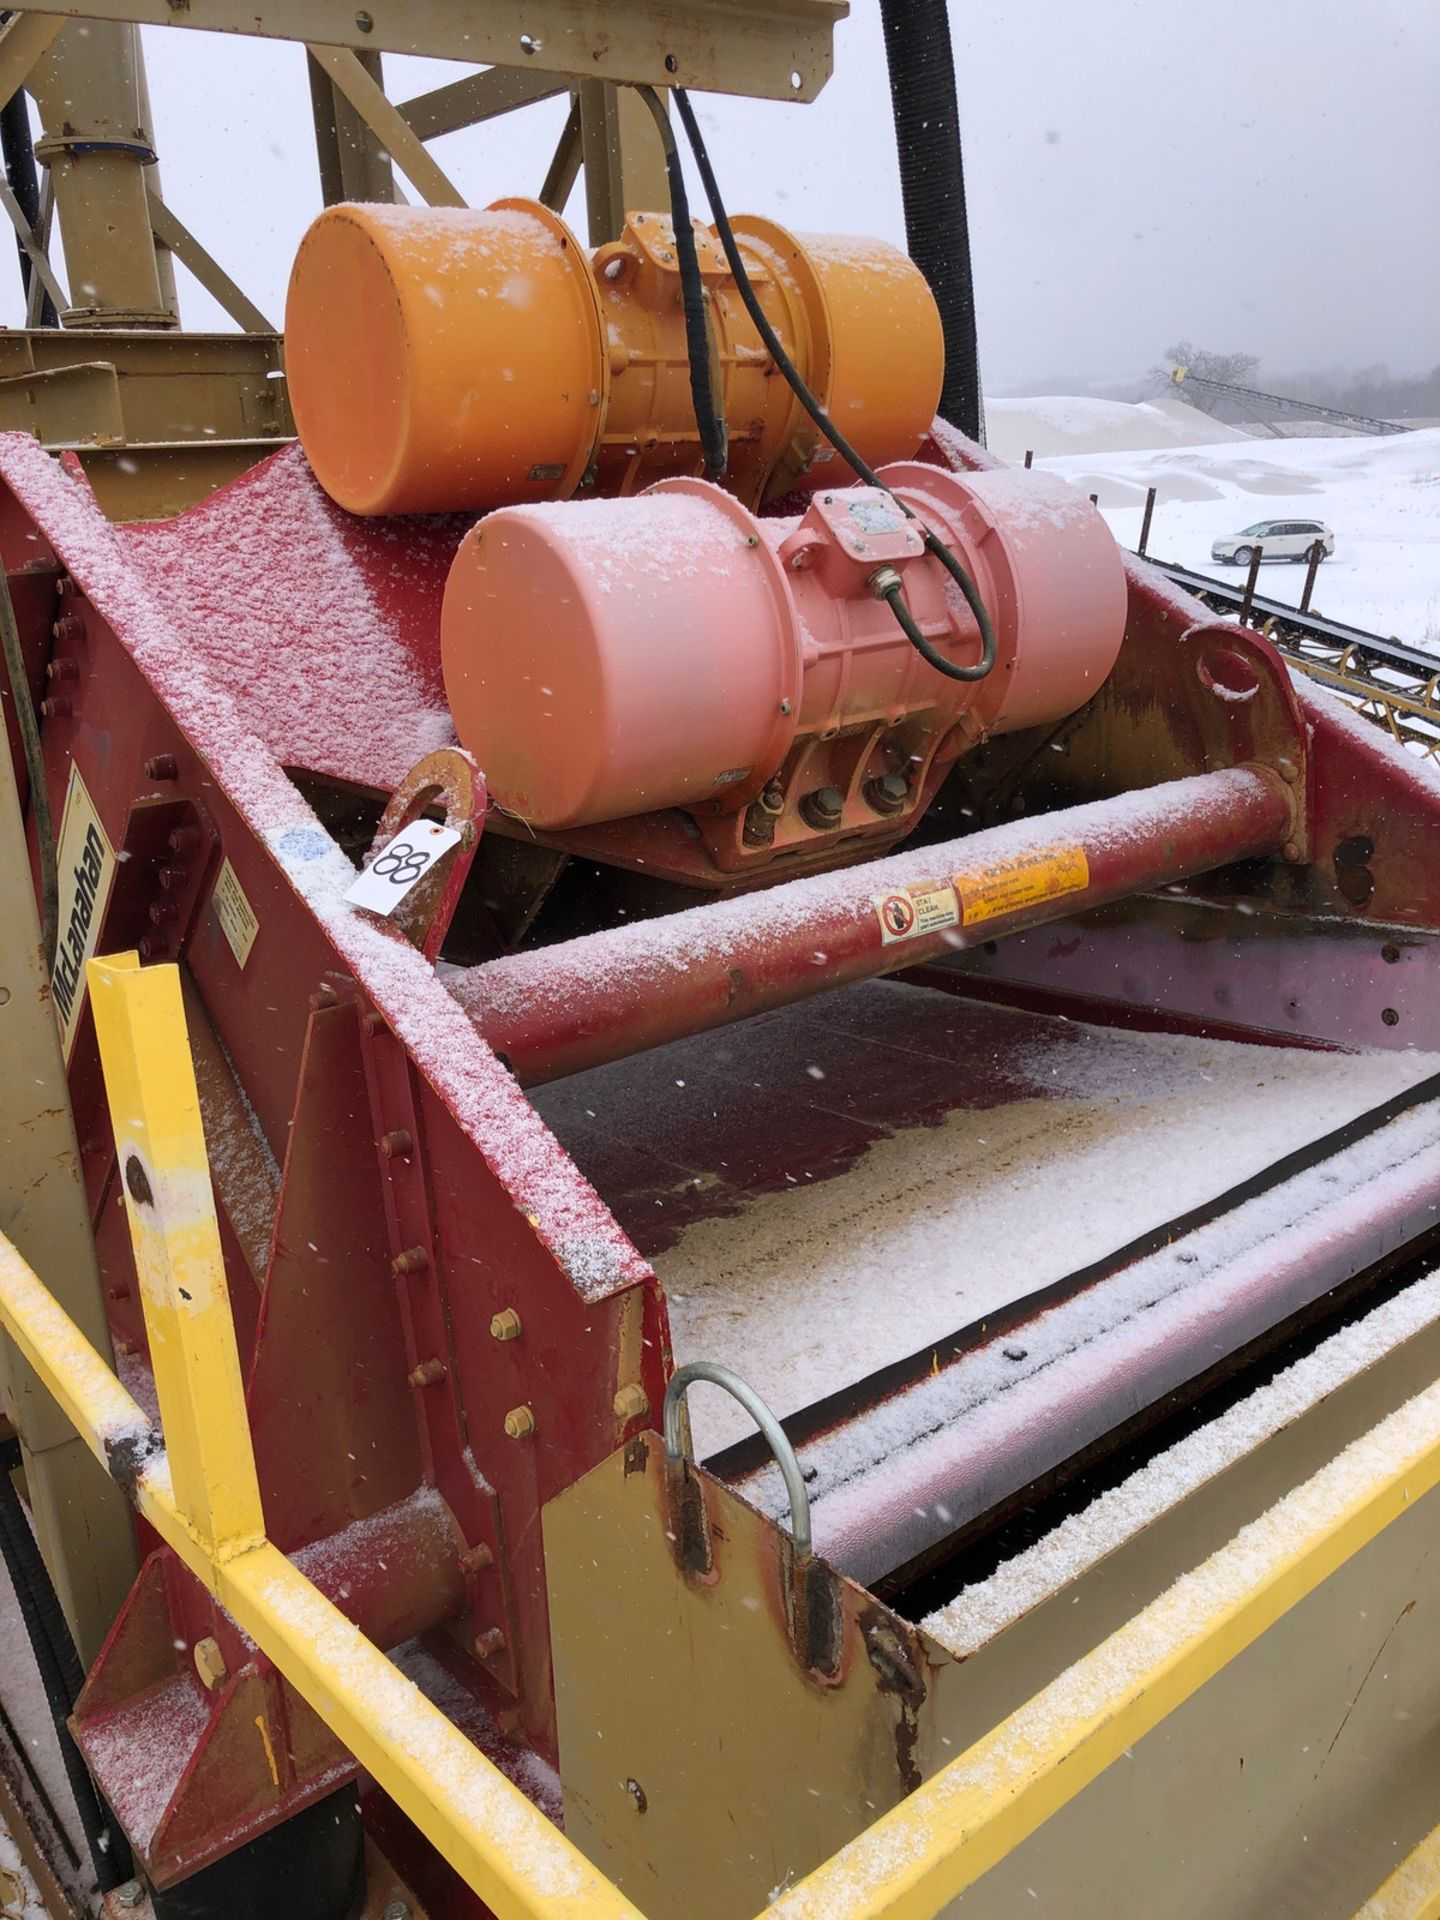 McLanahan Model VD15 5' x 12' Single Deck Dewatering Screen, S/N 20123079, Asset #DWS - Subj to Bulk